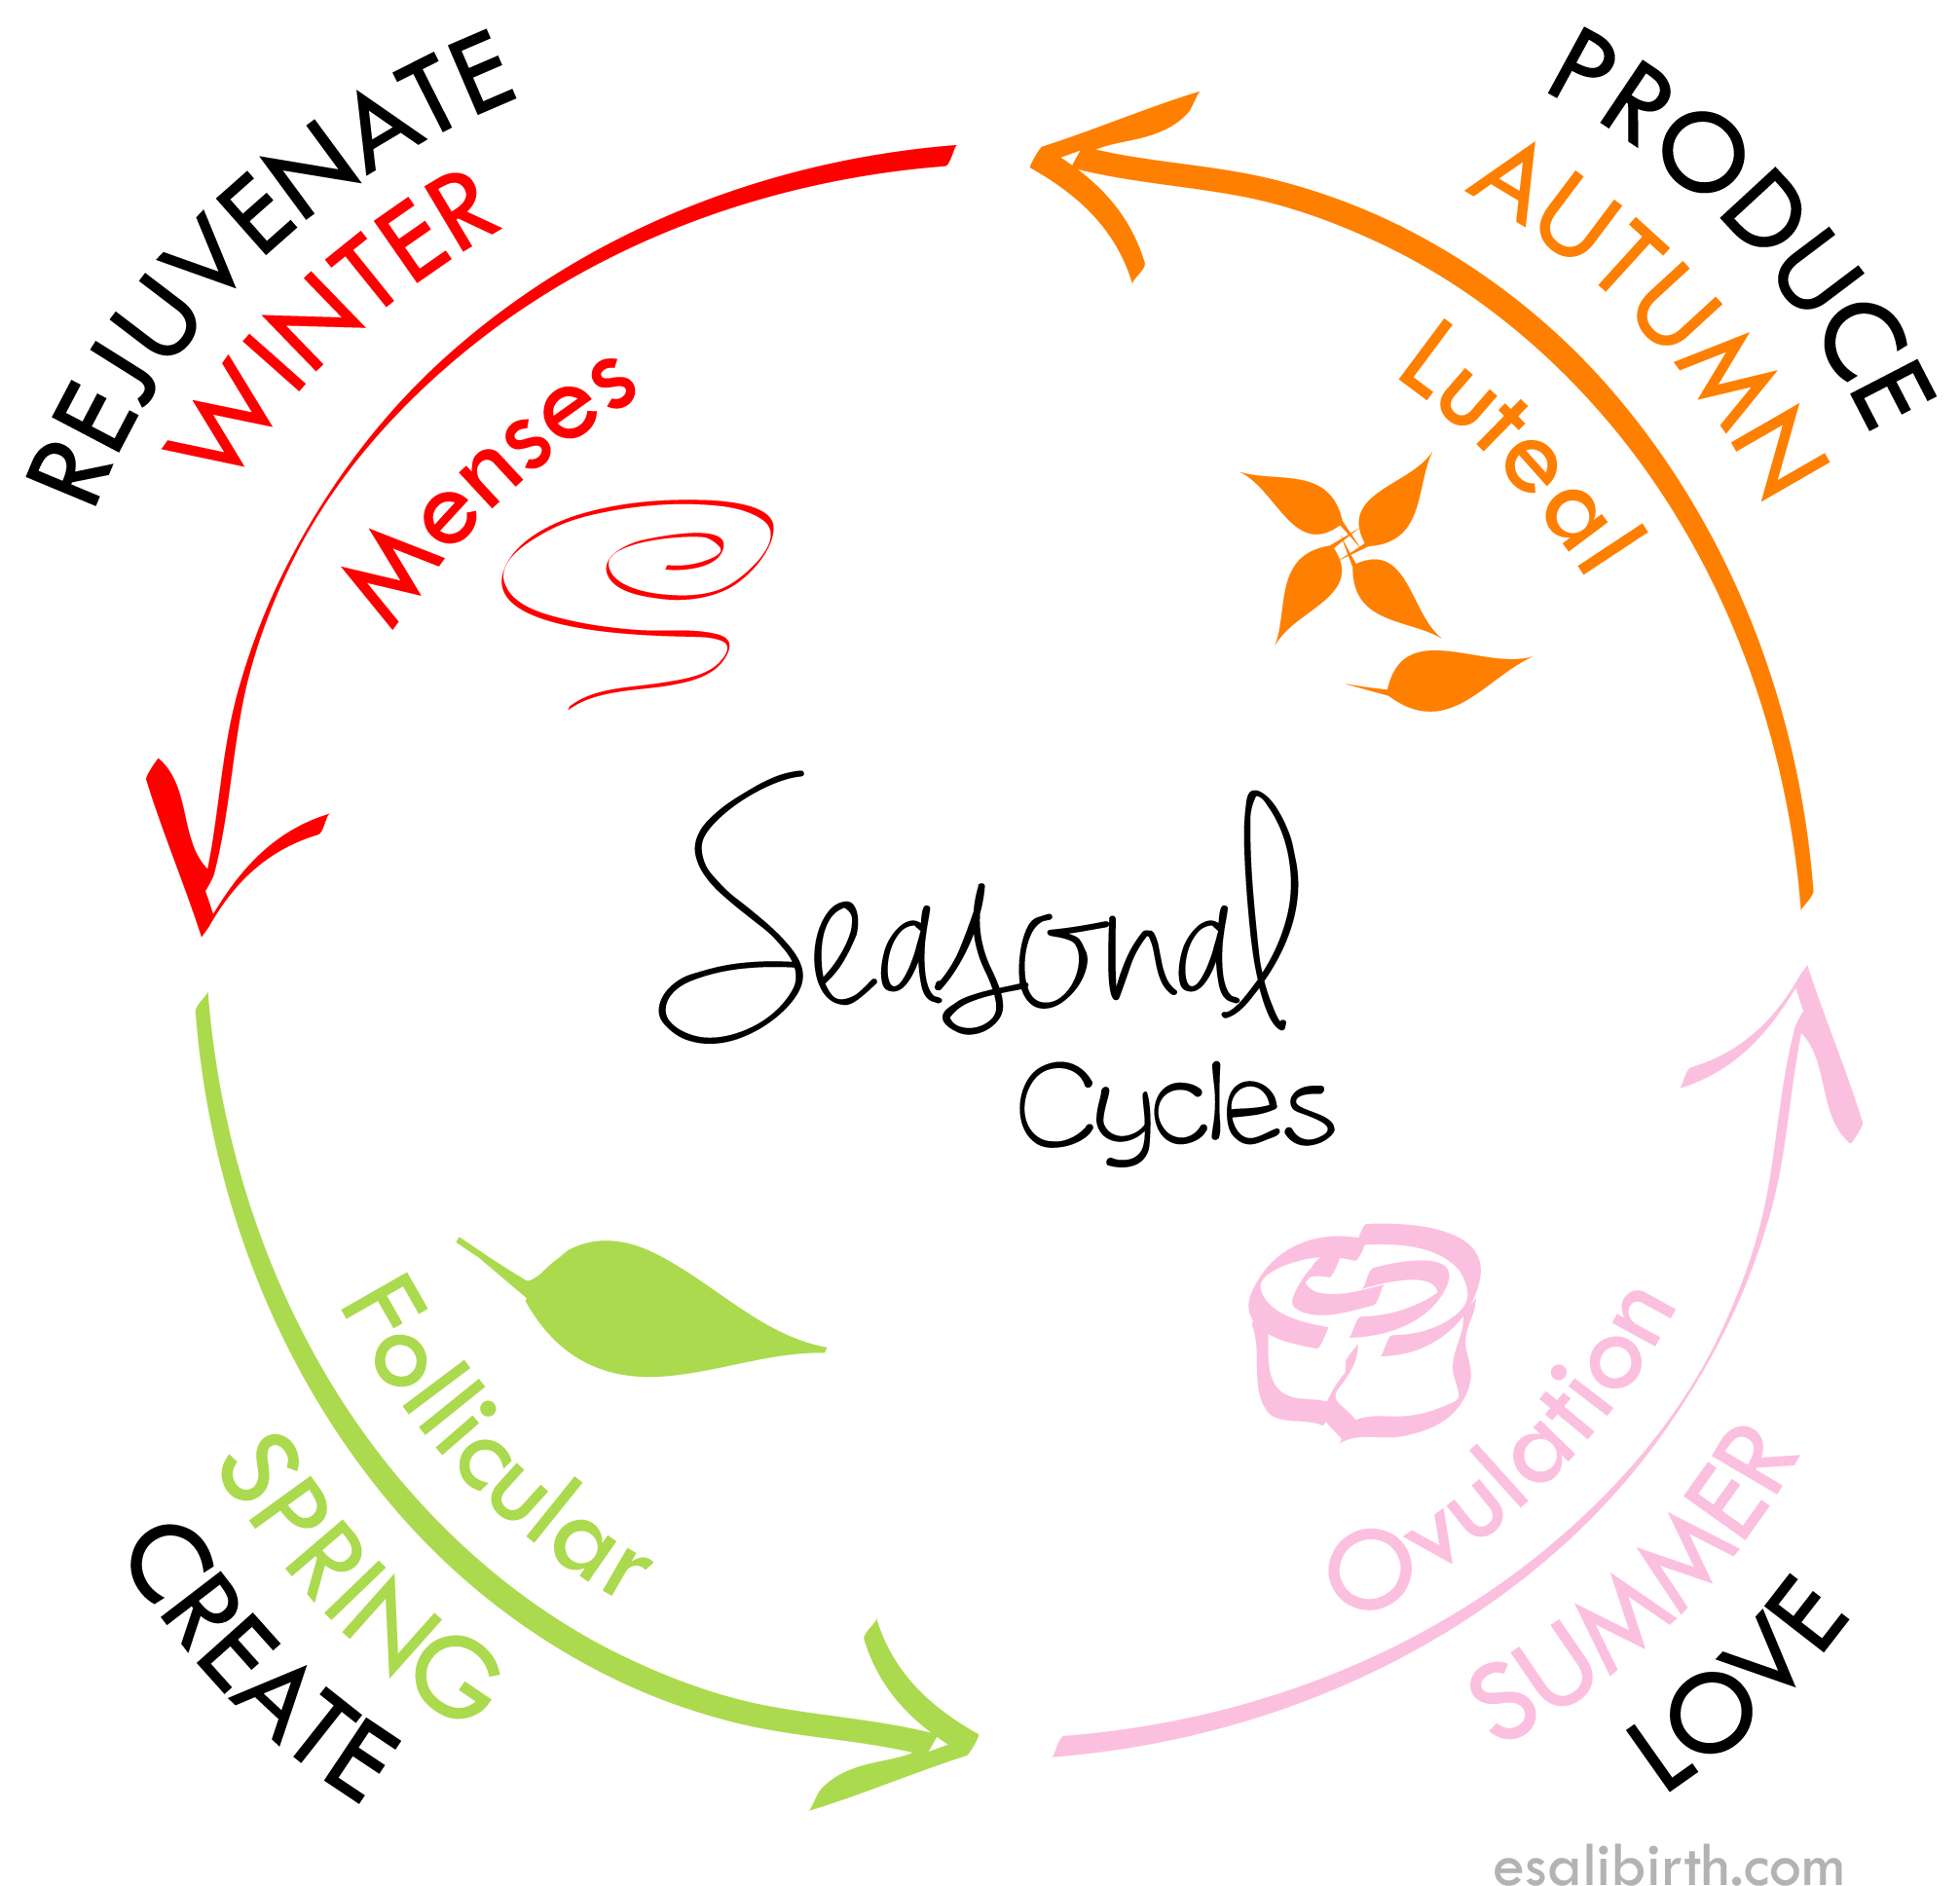 Seasonal Cycle Wheel